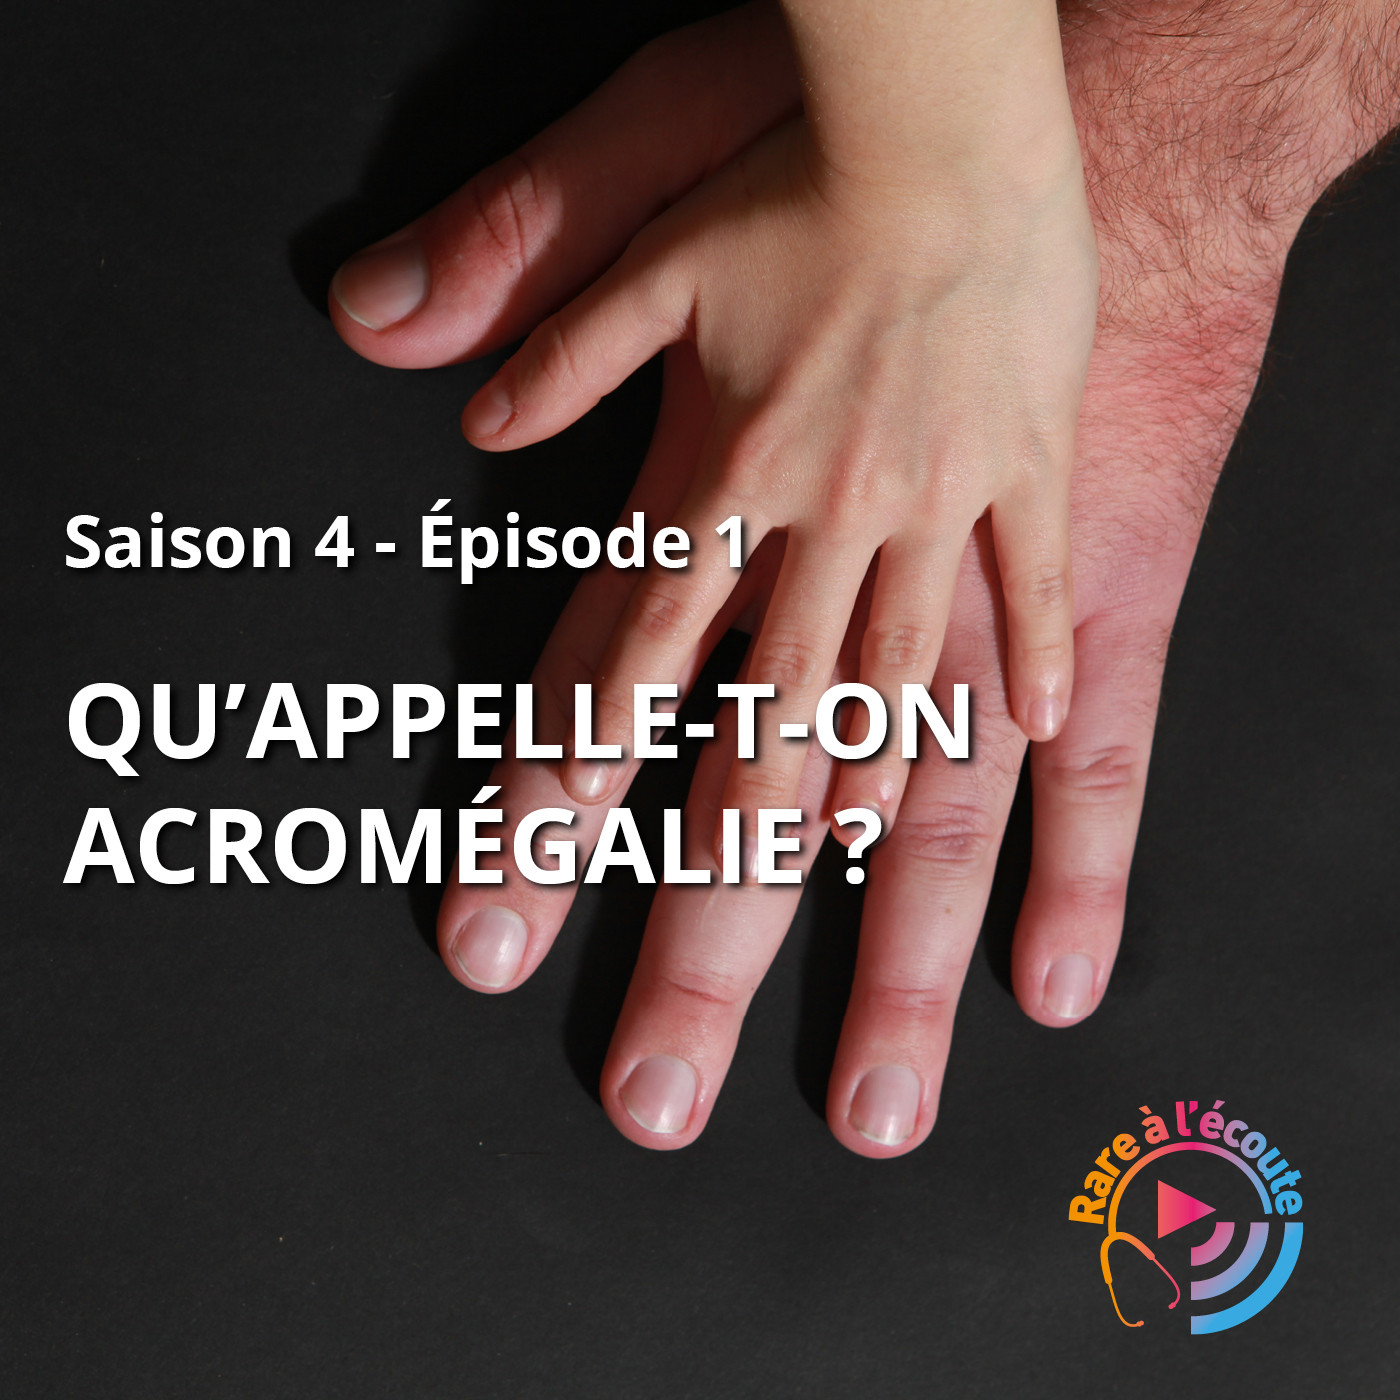 Qu'appelle-t-on Acromégalie ?